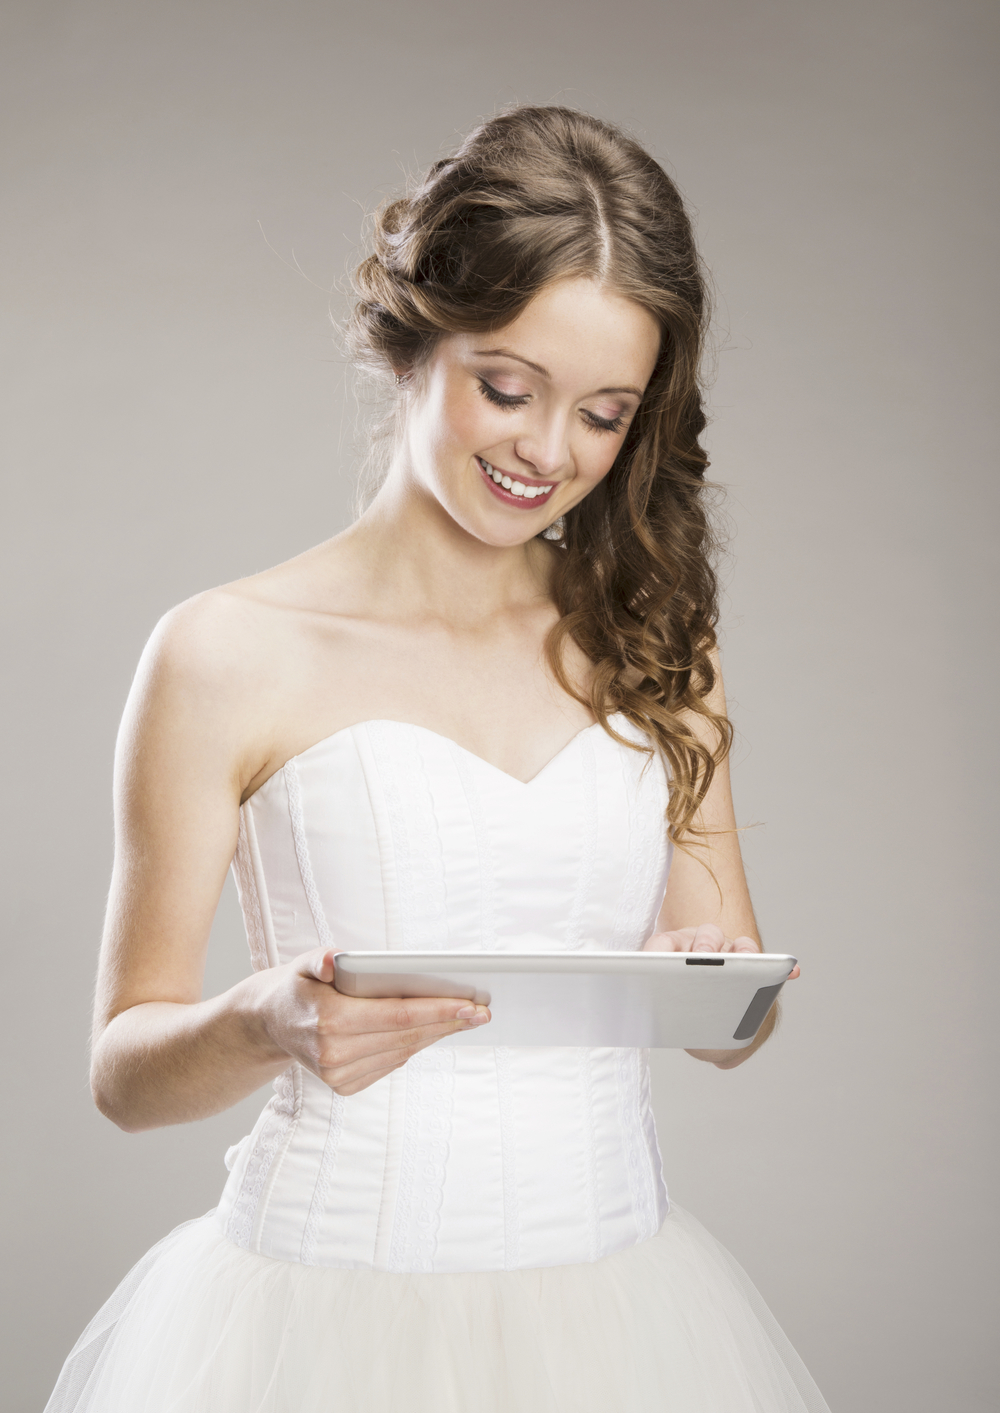 bride-login-to-digital-wedding-album